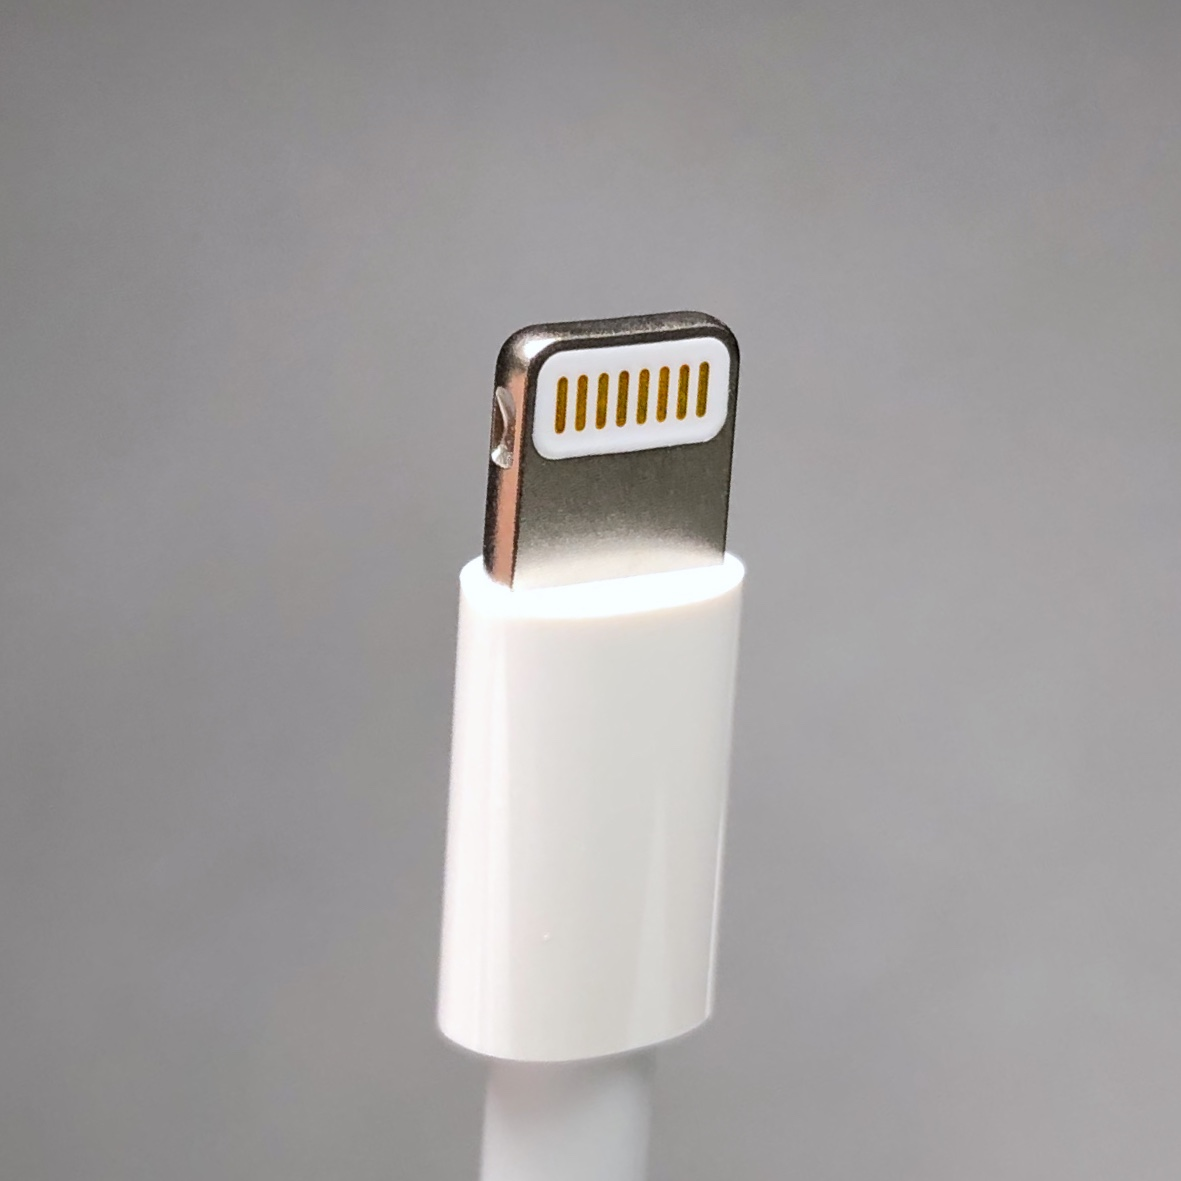 Cáp lightning to USB trắng (2m) cho iPhone/iPad/iPod